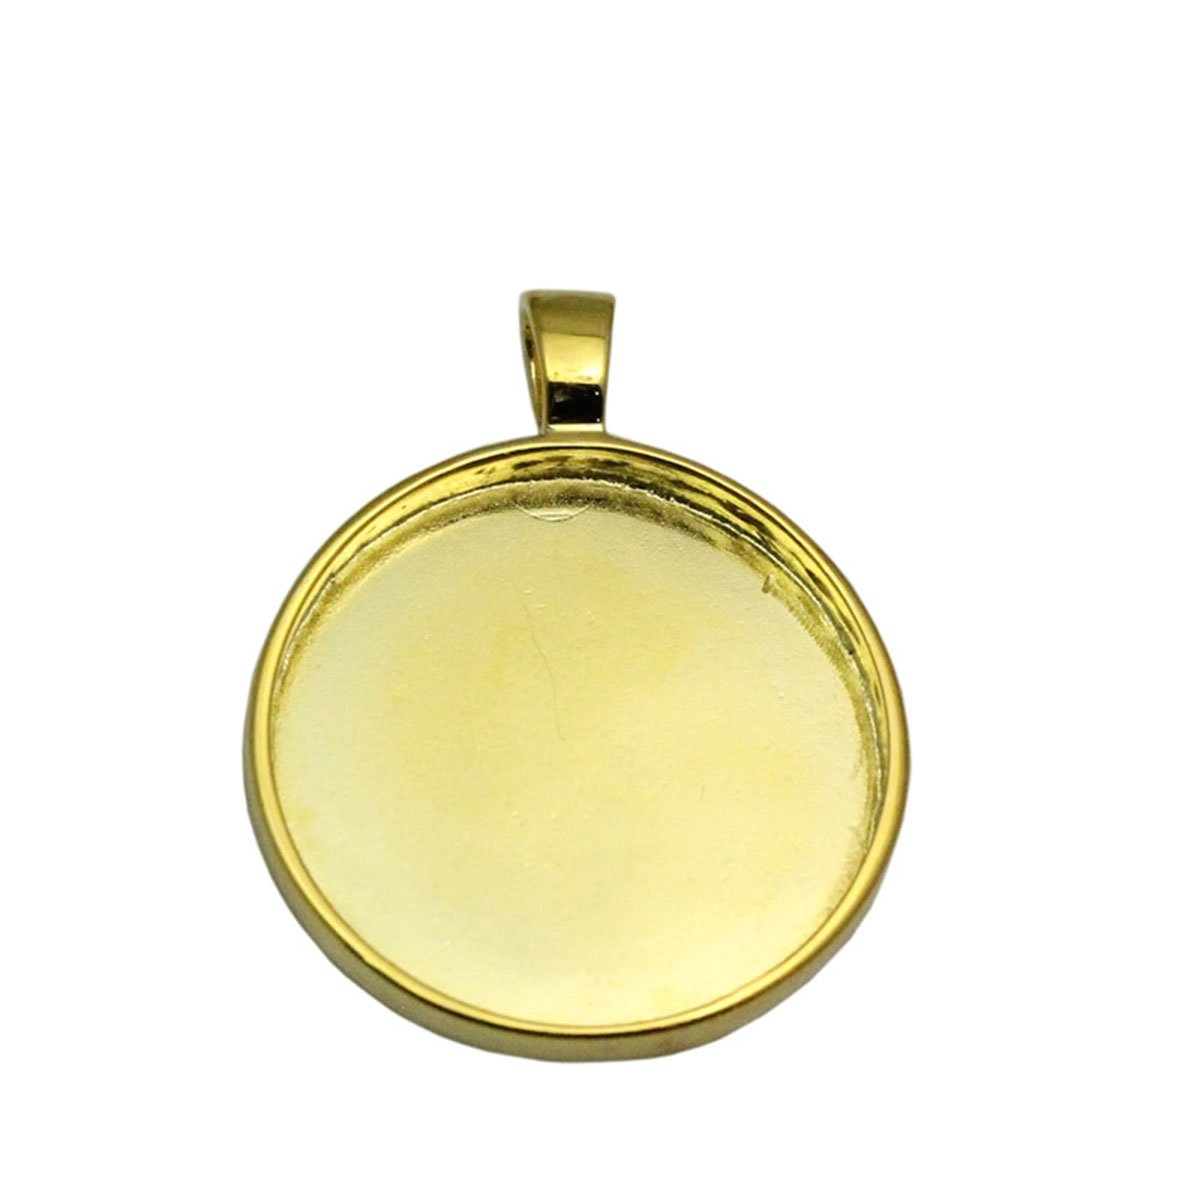 Round Bezel Pendant Setting Sterling Silver Cabochon Base 25 mm Round Bezel Tray DIY Jewelry 14kt Gold Plated